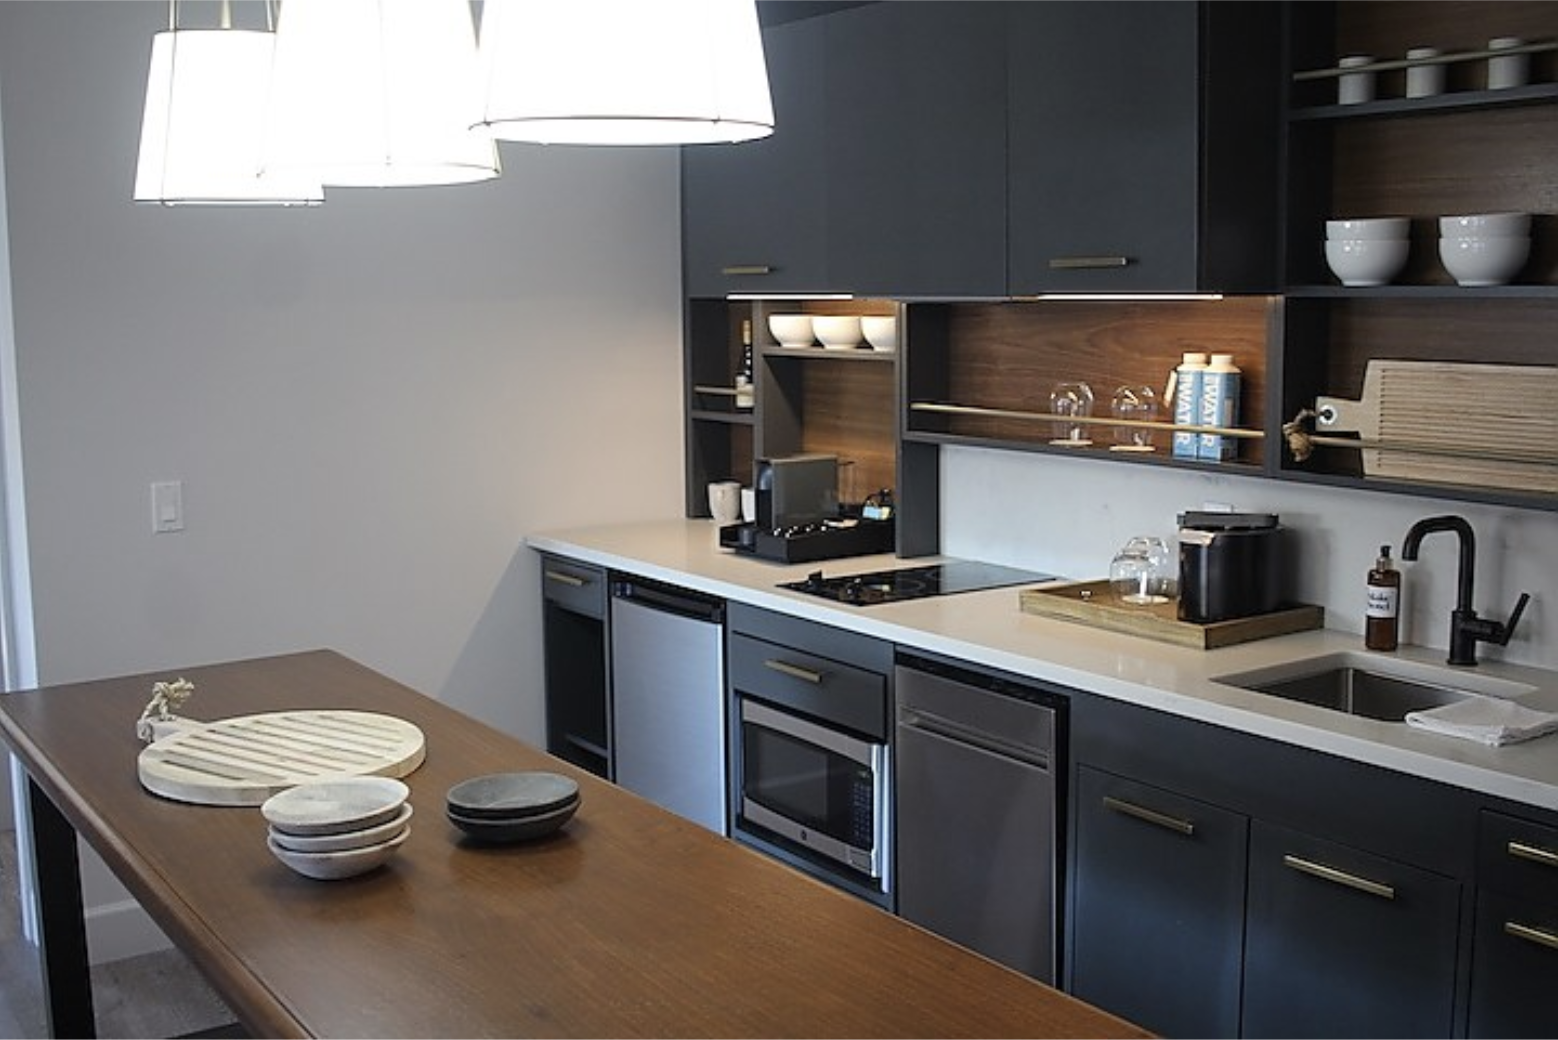 HVS Design  sourced  Kenyon 2-burner cooktops  for  the Haven Suites at the Blake Hotel . Photo Courtesy of  The Blake Hotel.